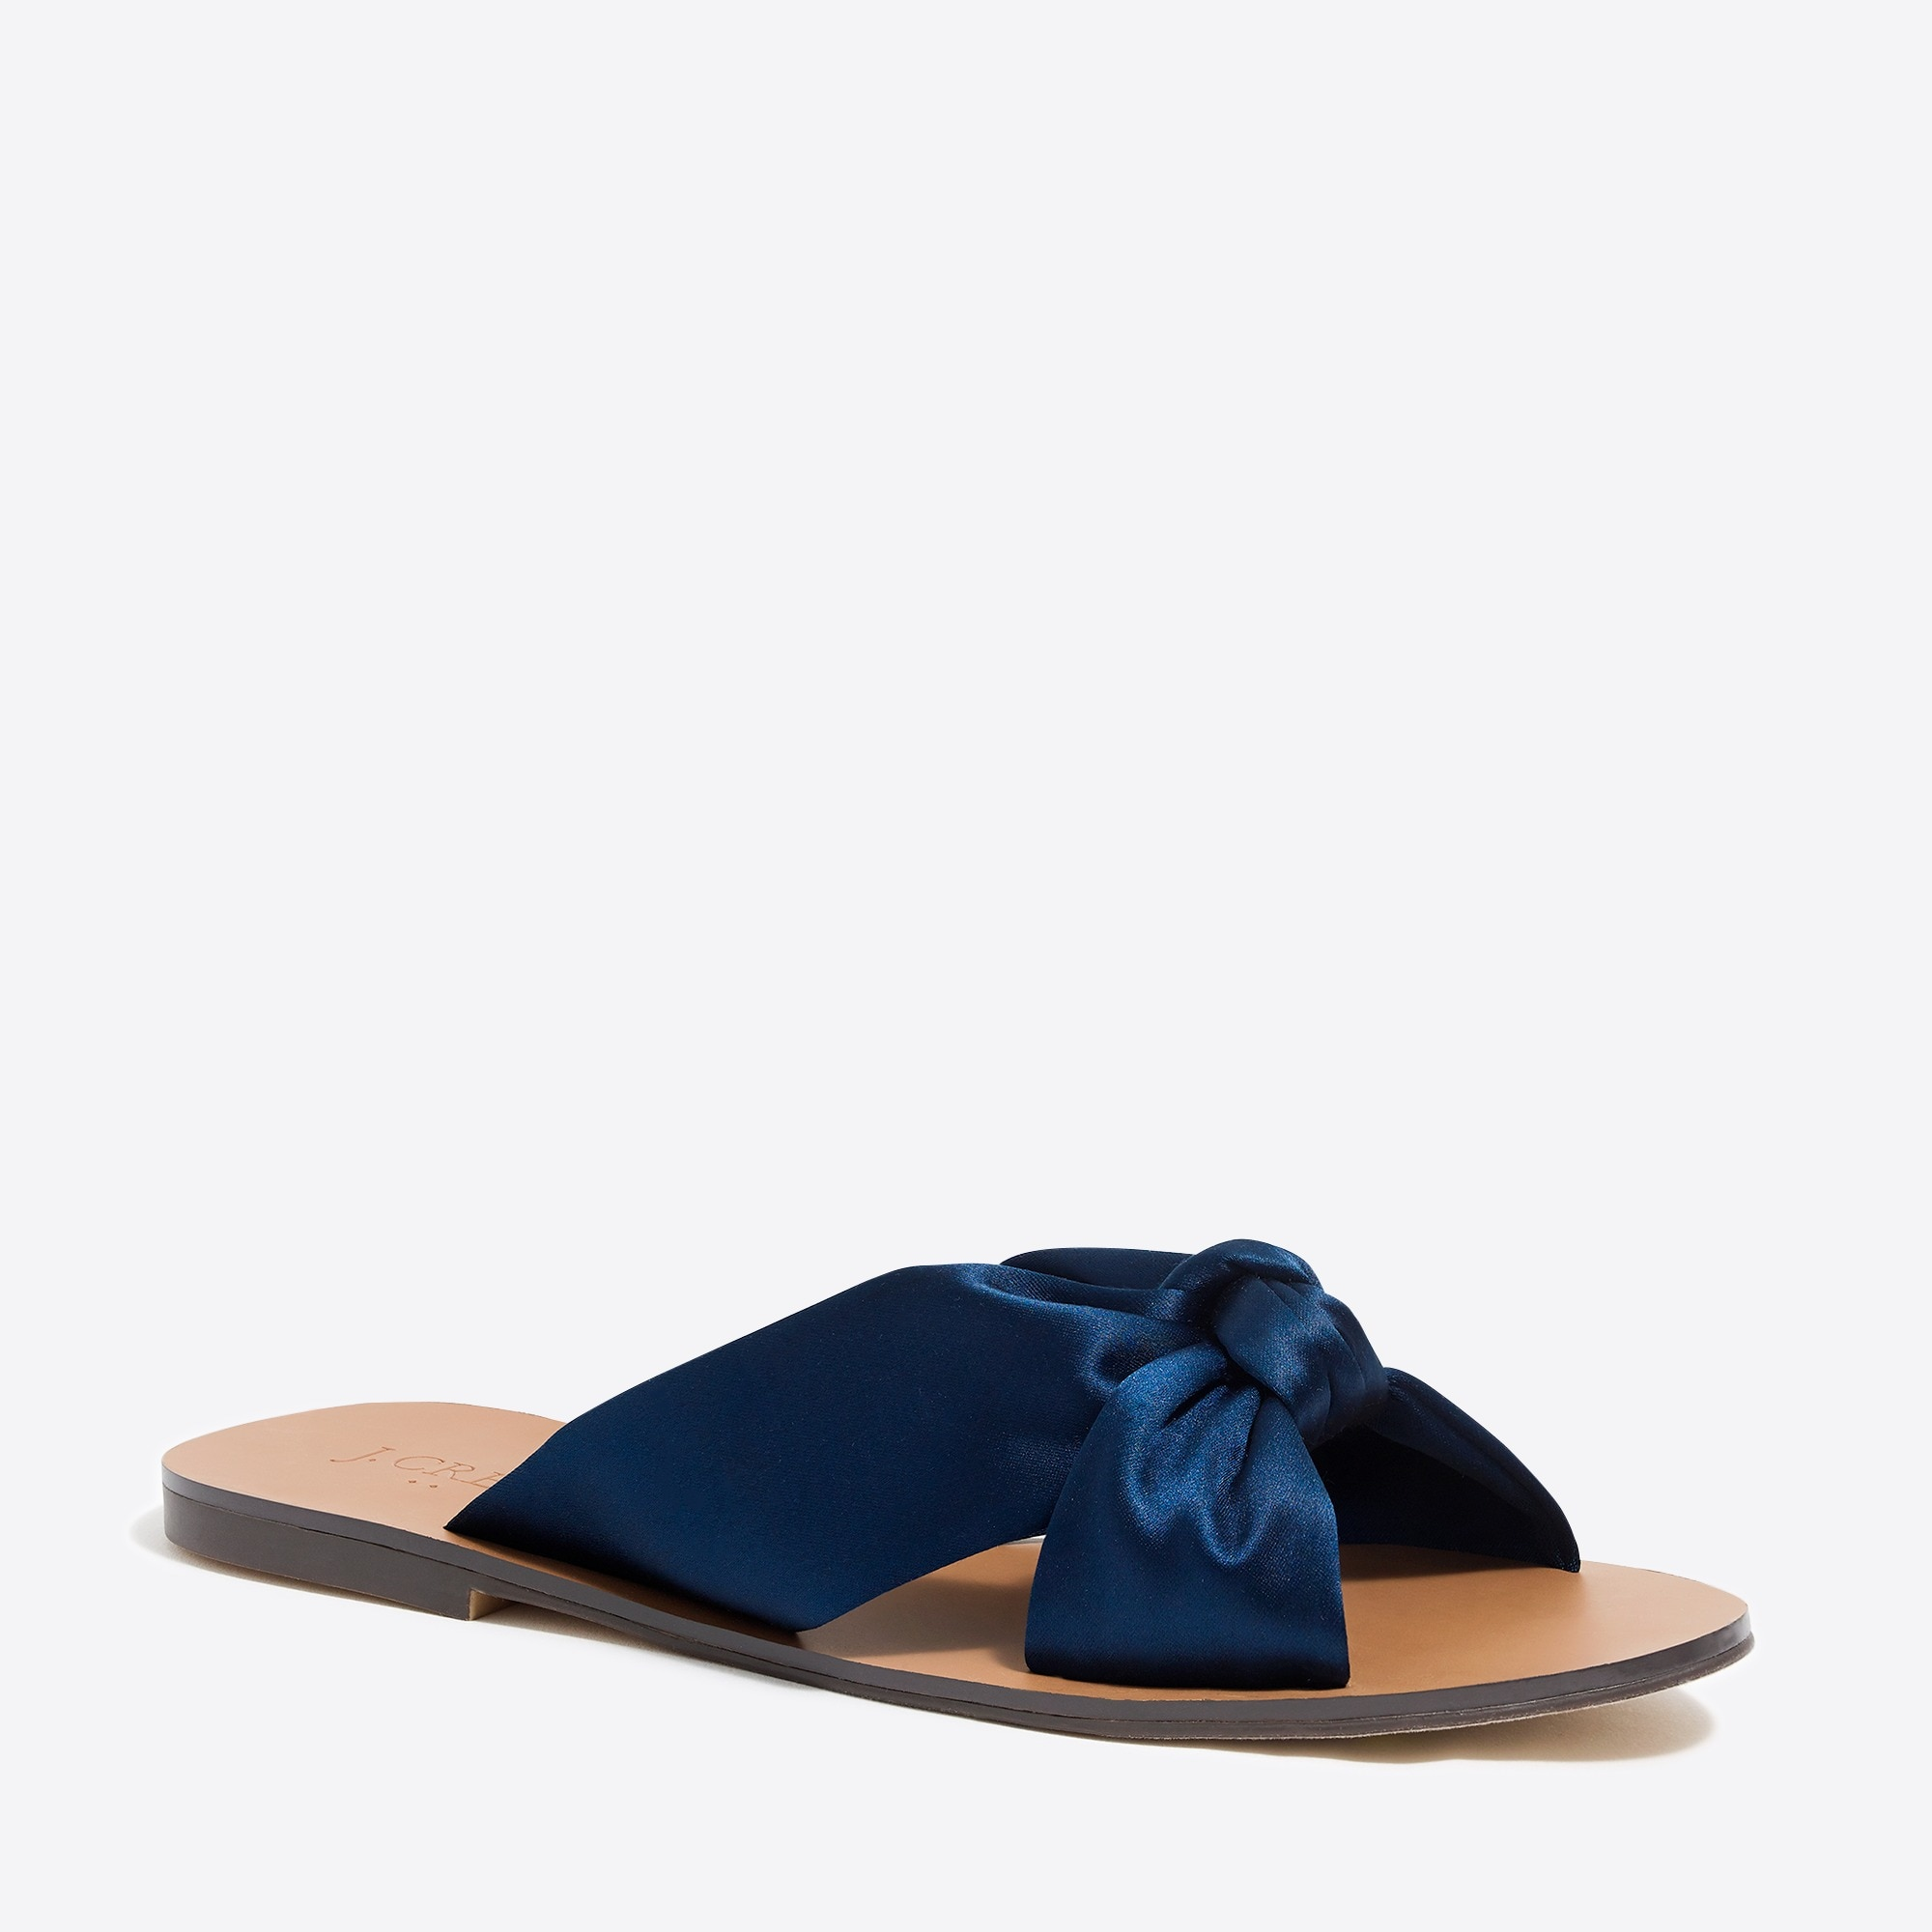 Satin Knotted Slide Sandals by J.Crew